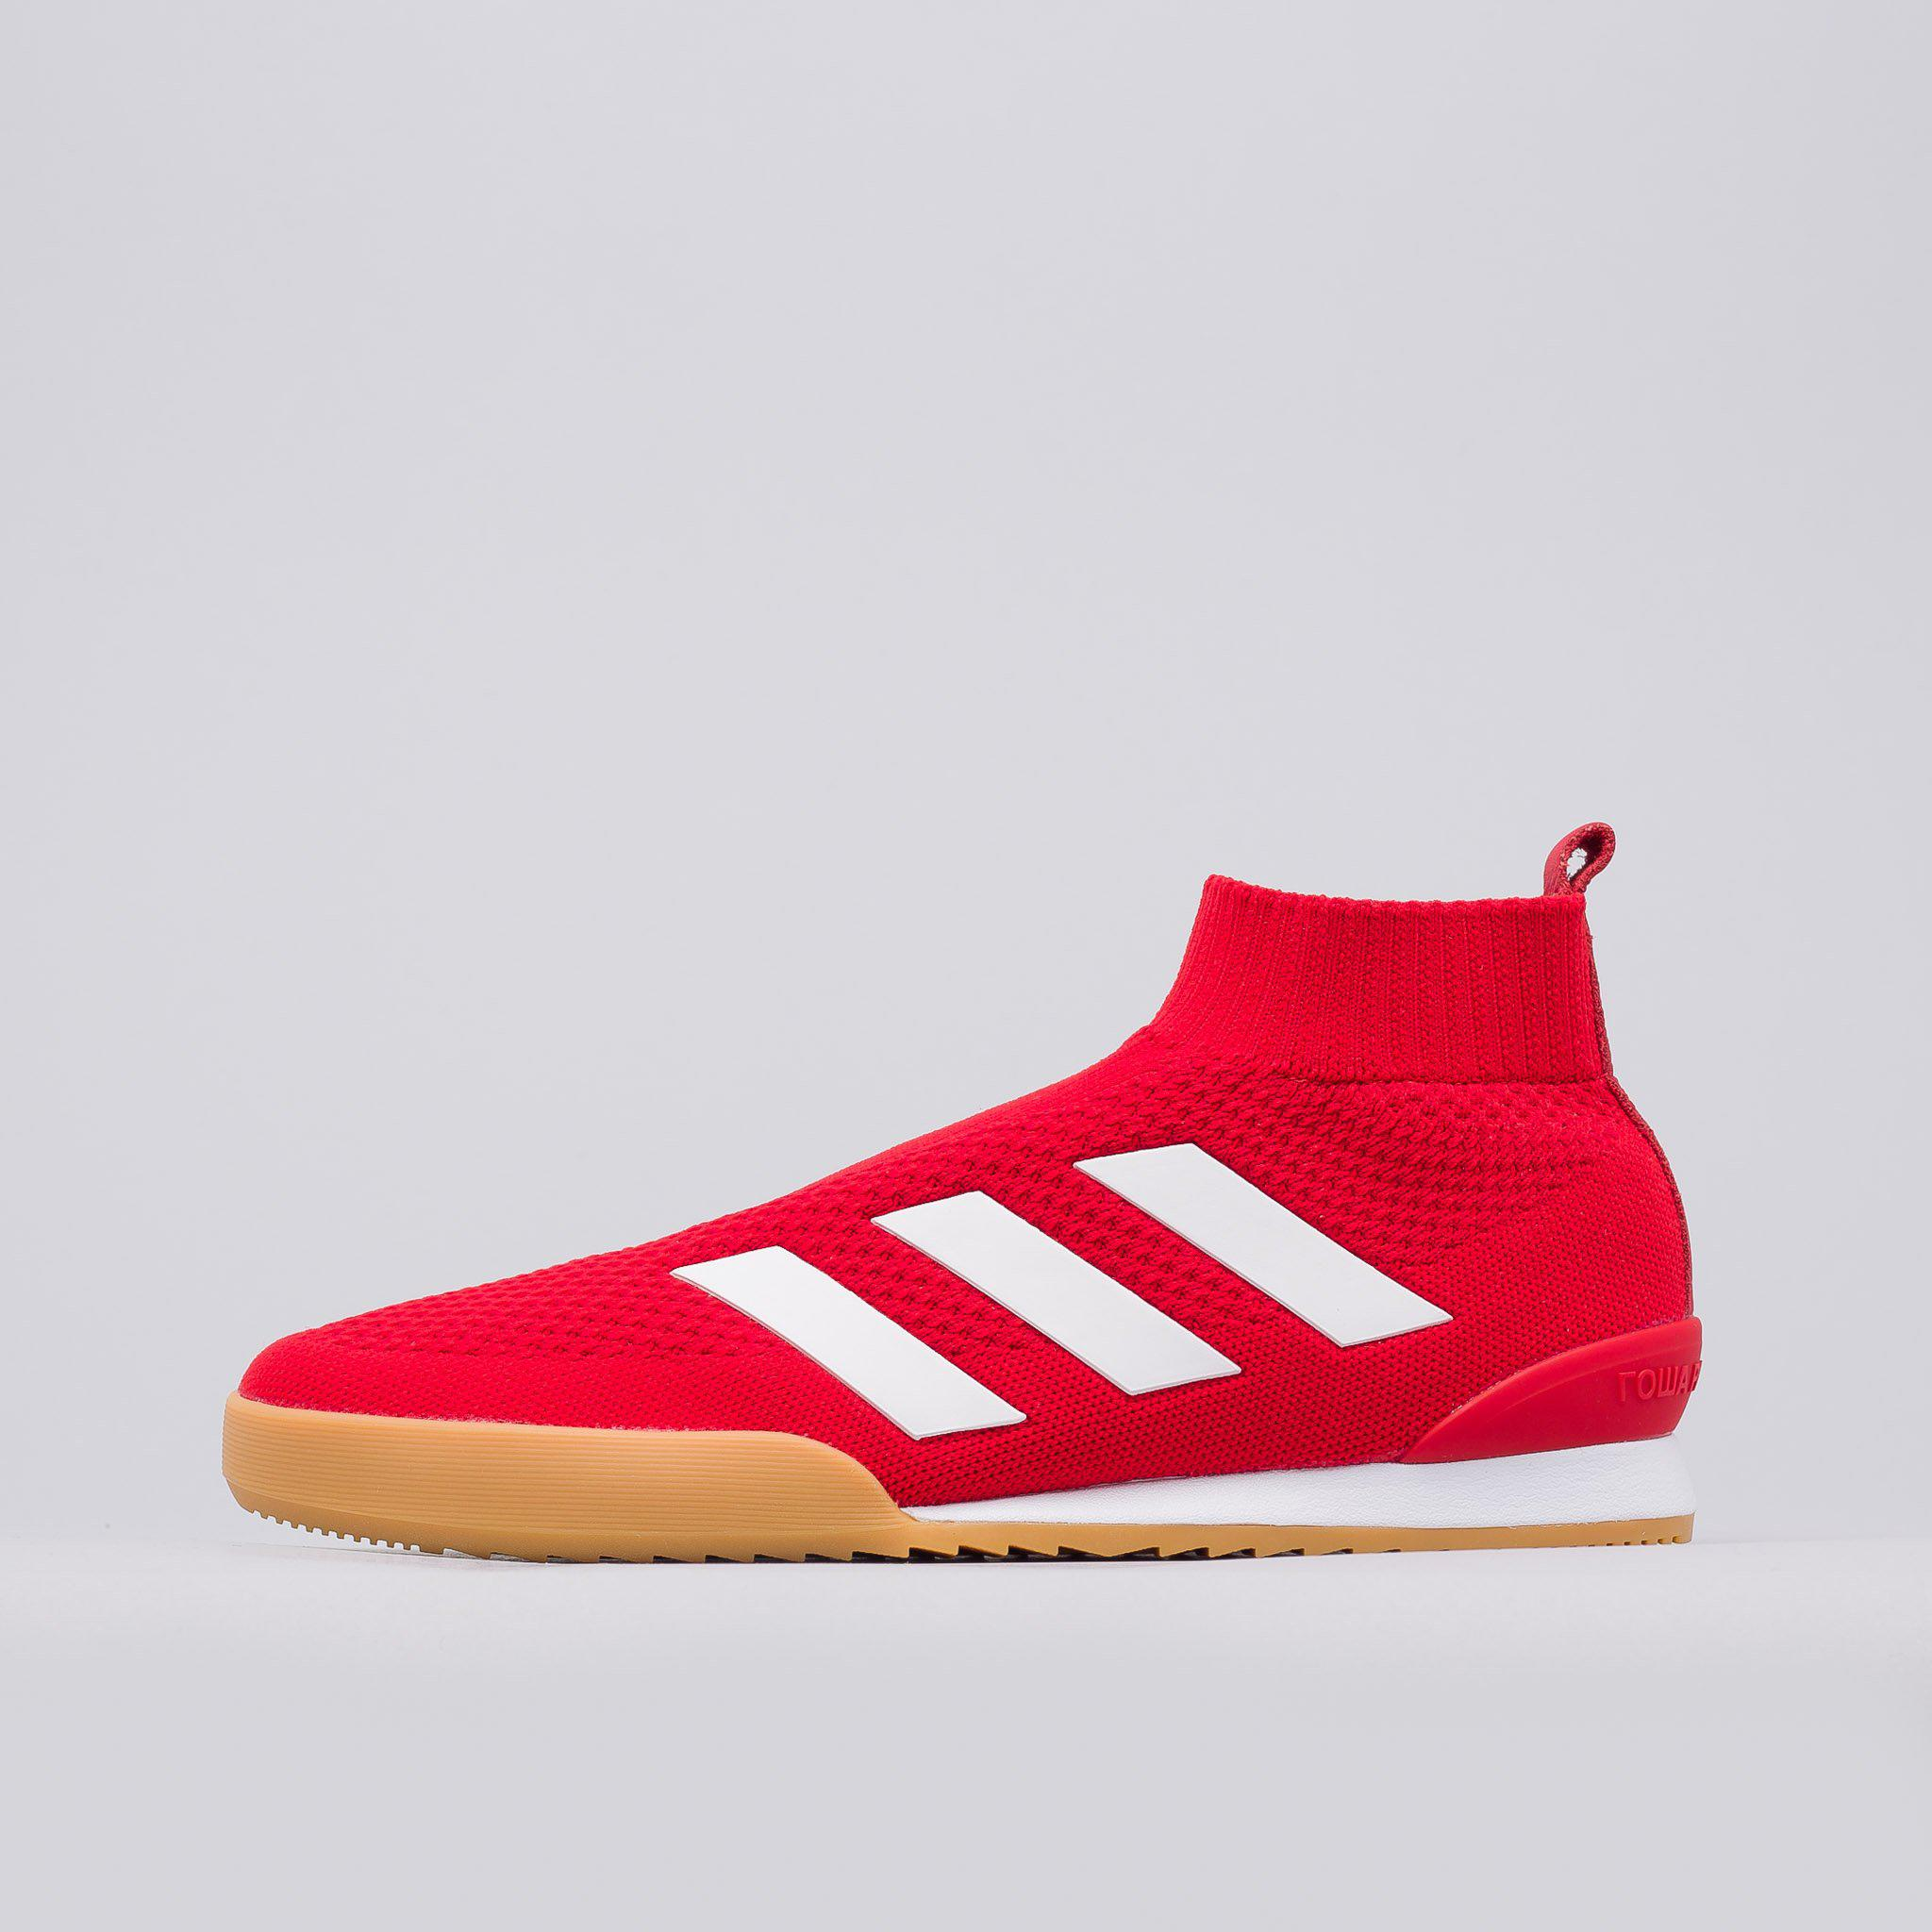 new style aee98 bafbb Lyst - Gosha Rubchinskiy X Adidas Ace Super Shoes In Red in